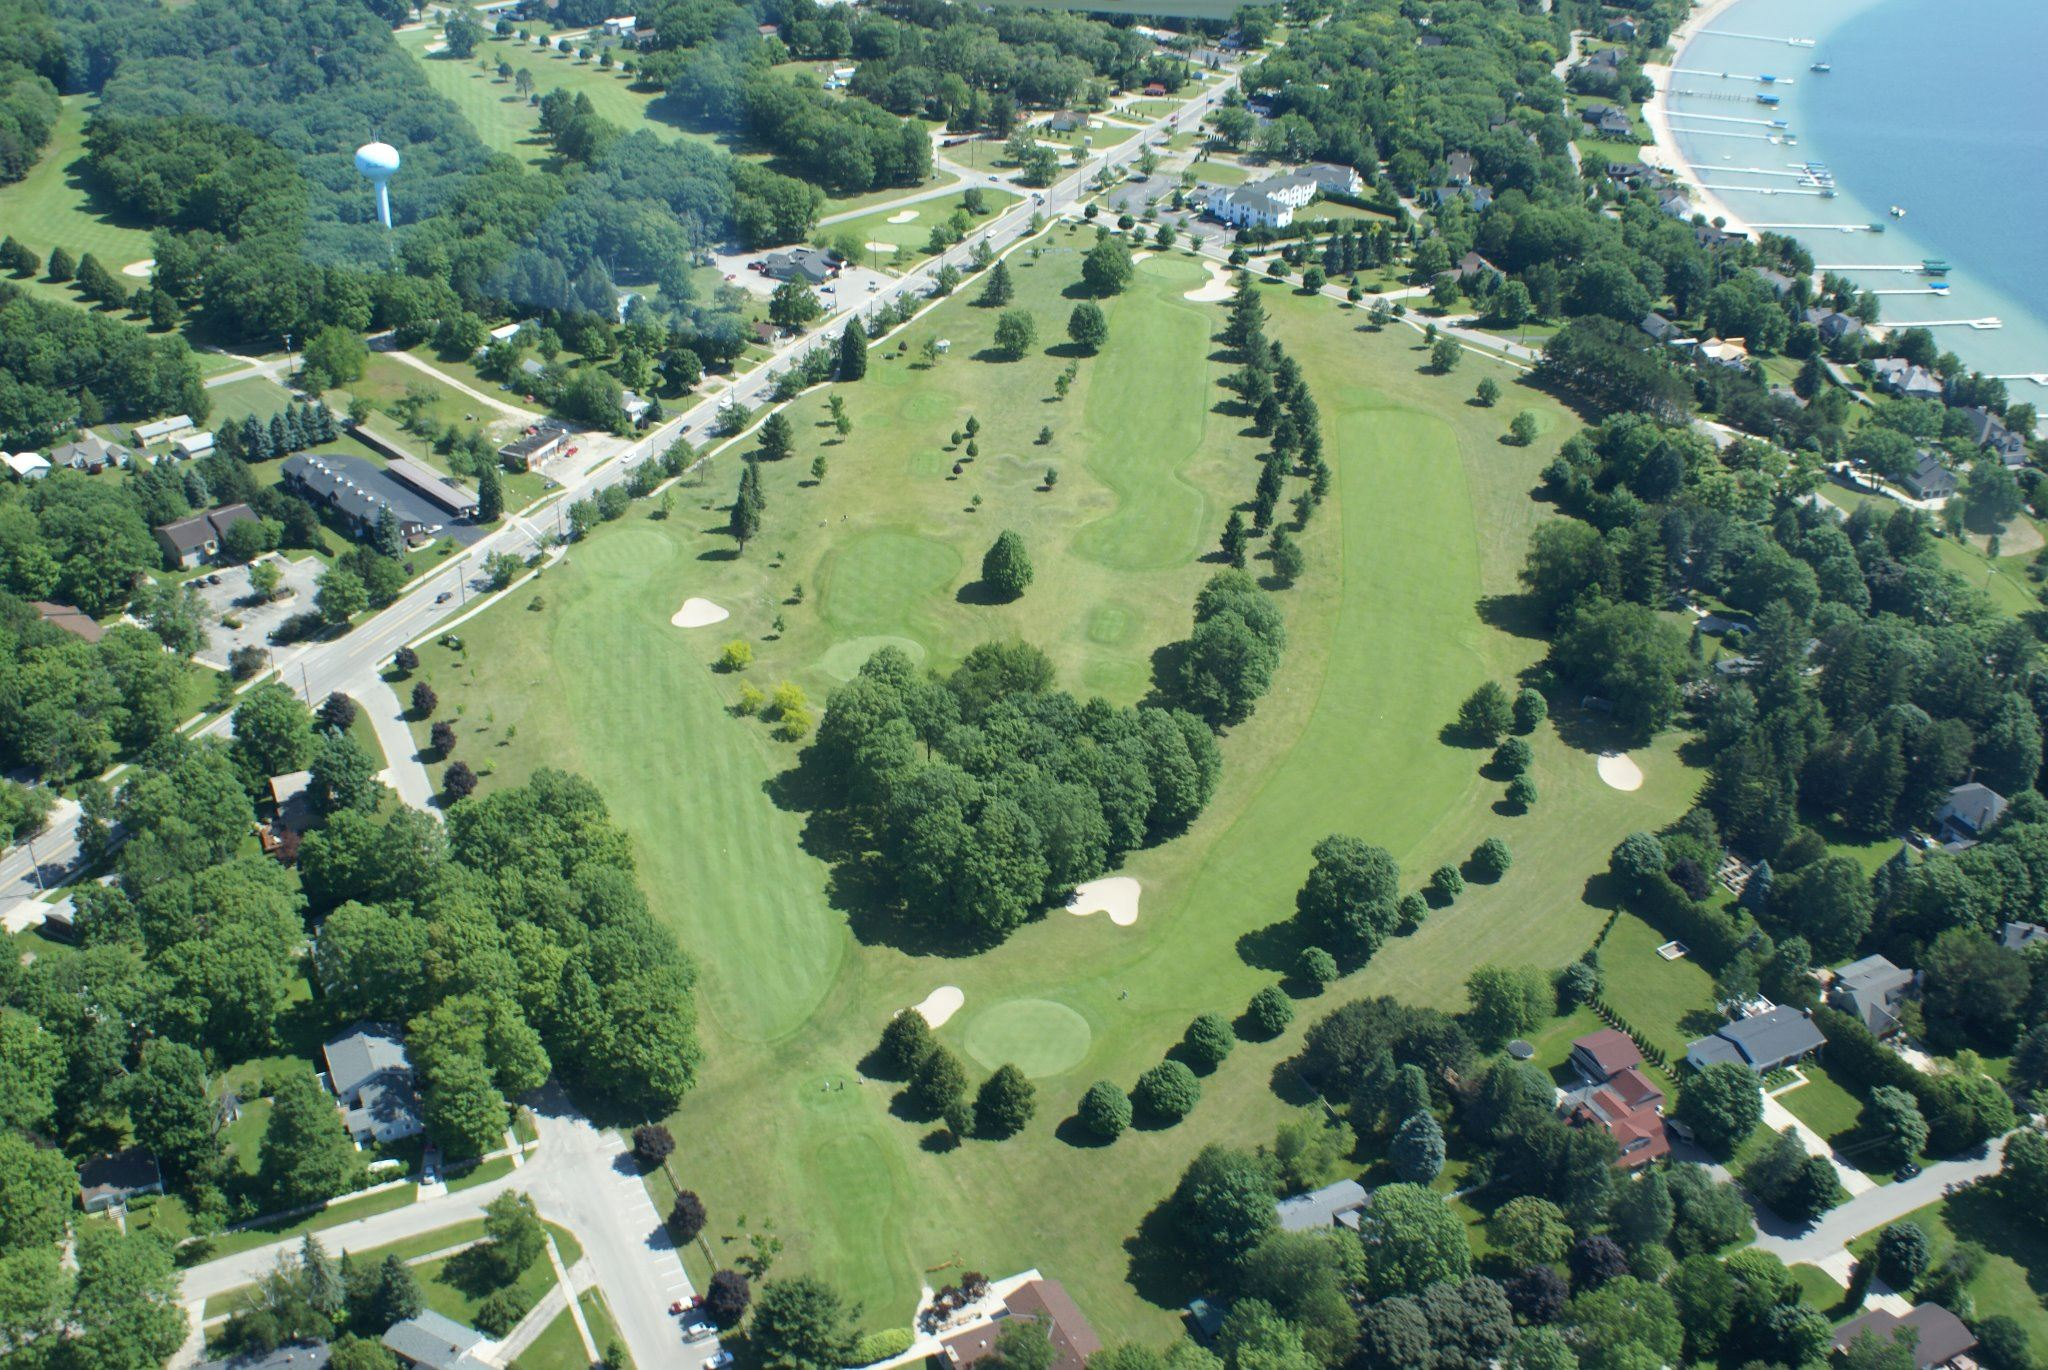 aerial view of golf club